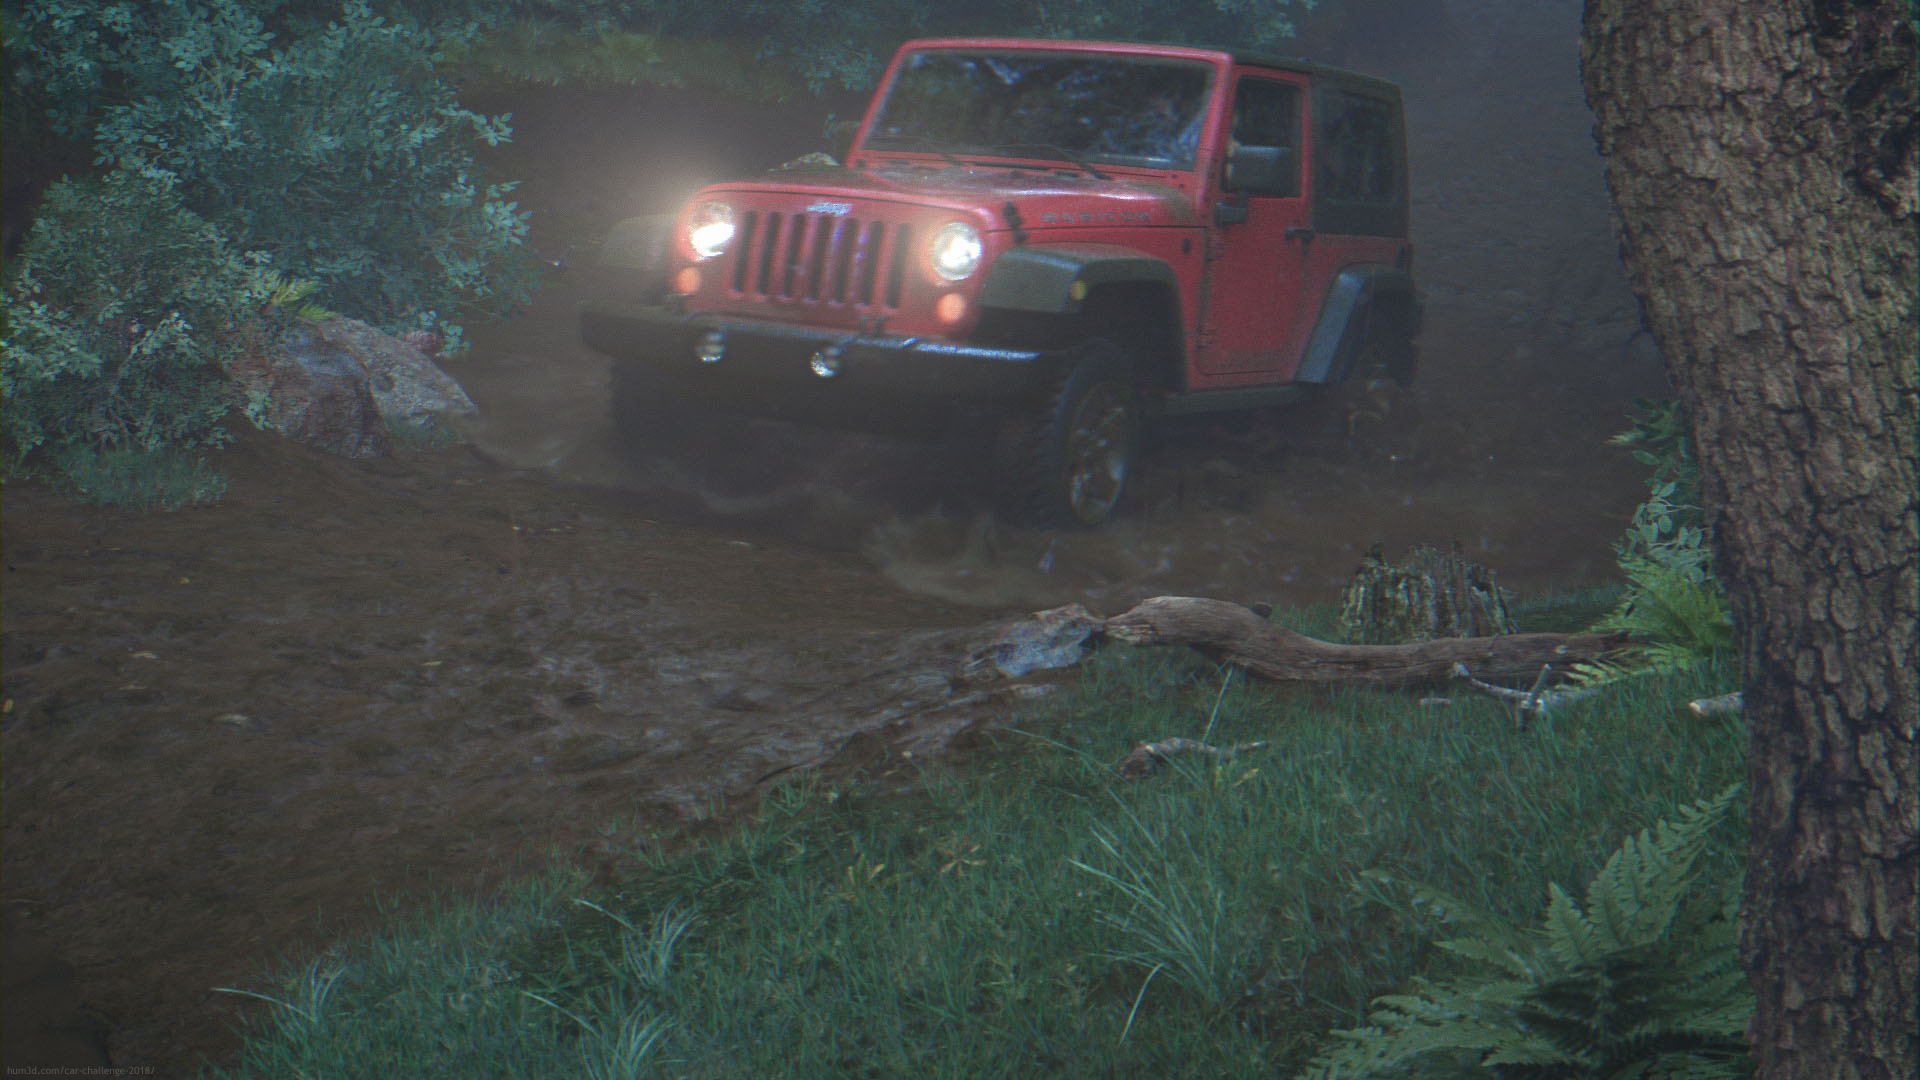 JEEP driving through muddy forest road 3d art